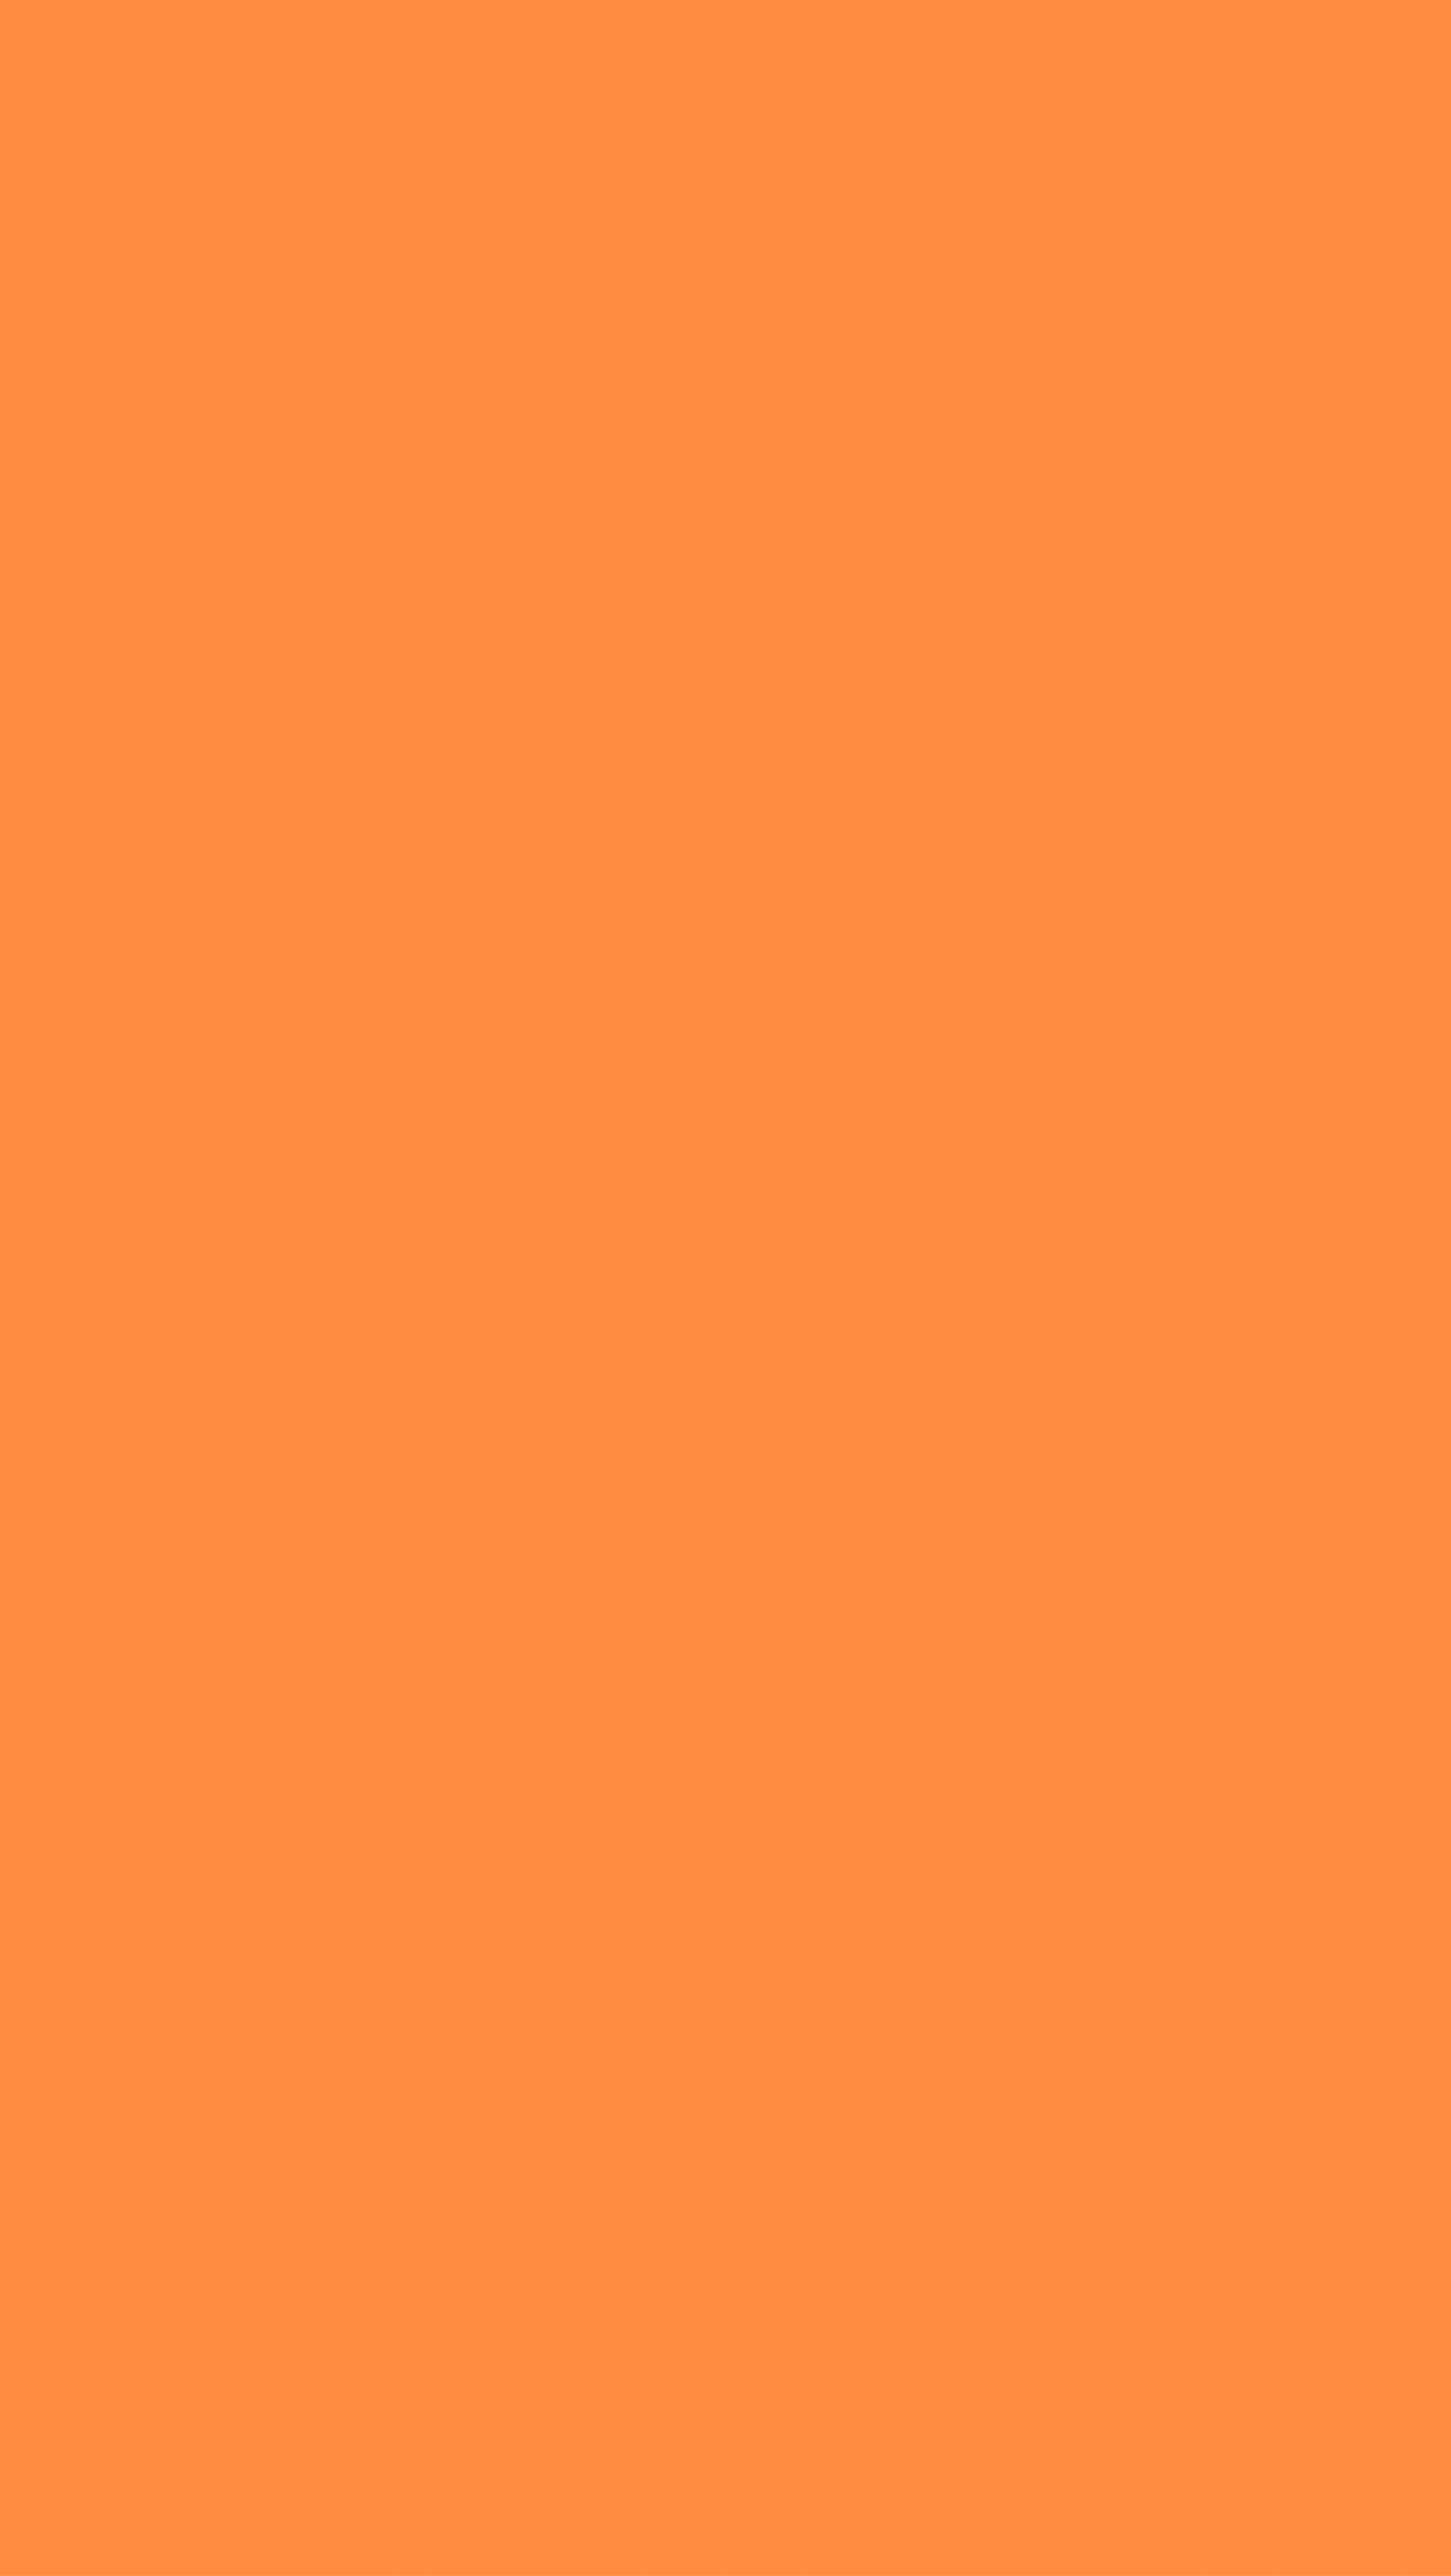 Solid Color Wallpaper For Iphone Solid color wa 2898x5144